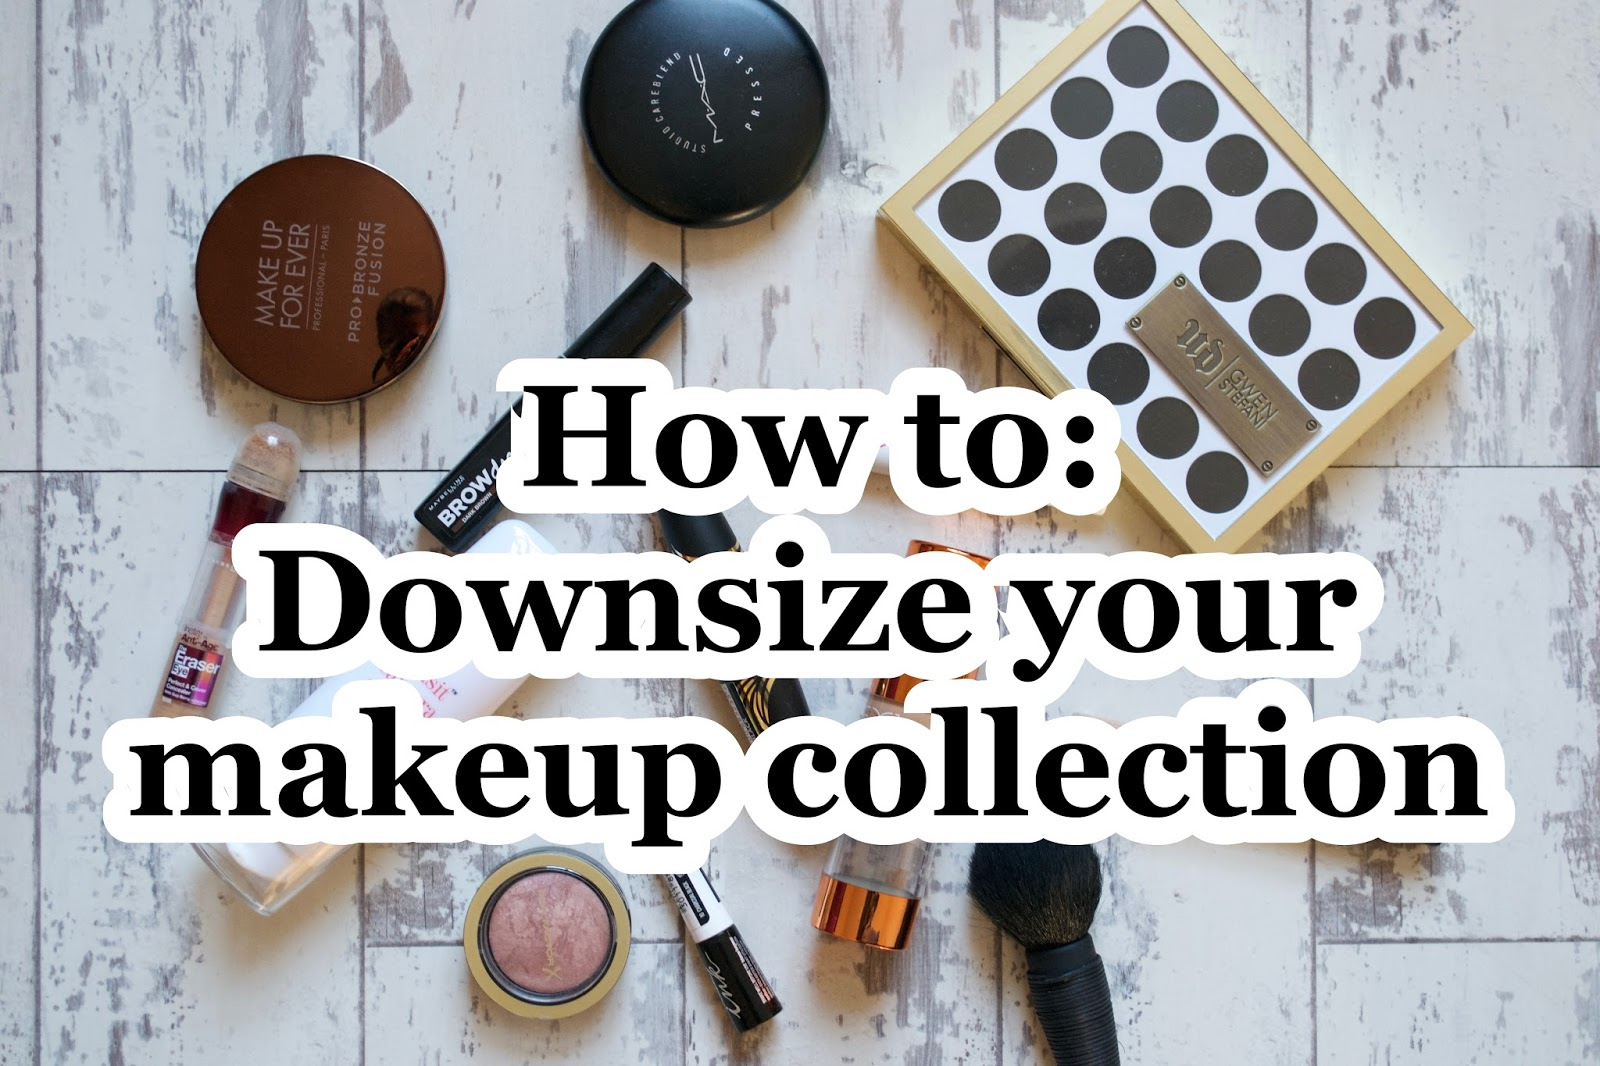 How to: Downsize Your Makeup Collection - Aspiring Londoner